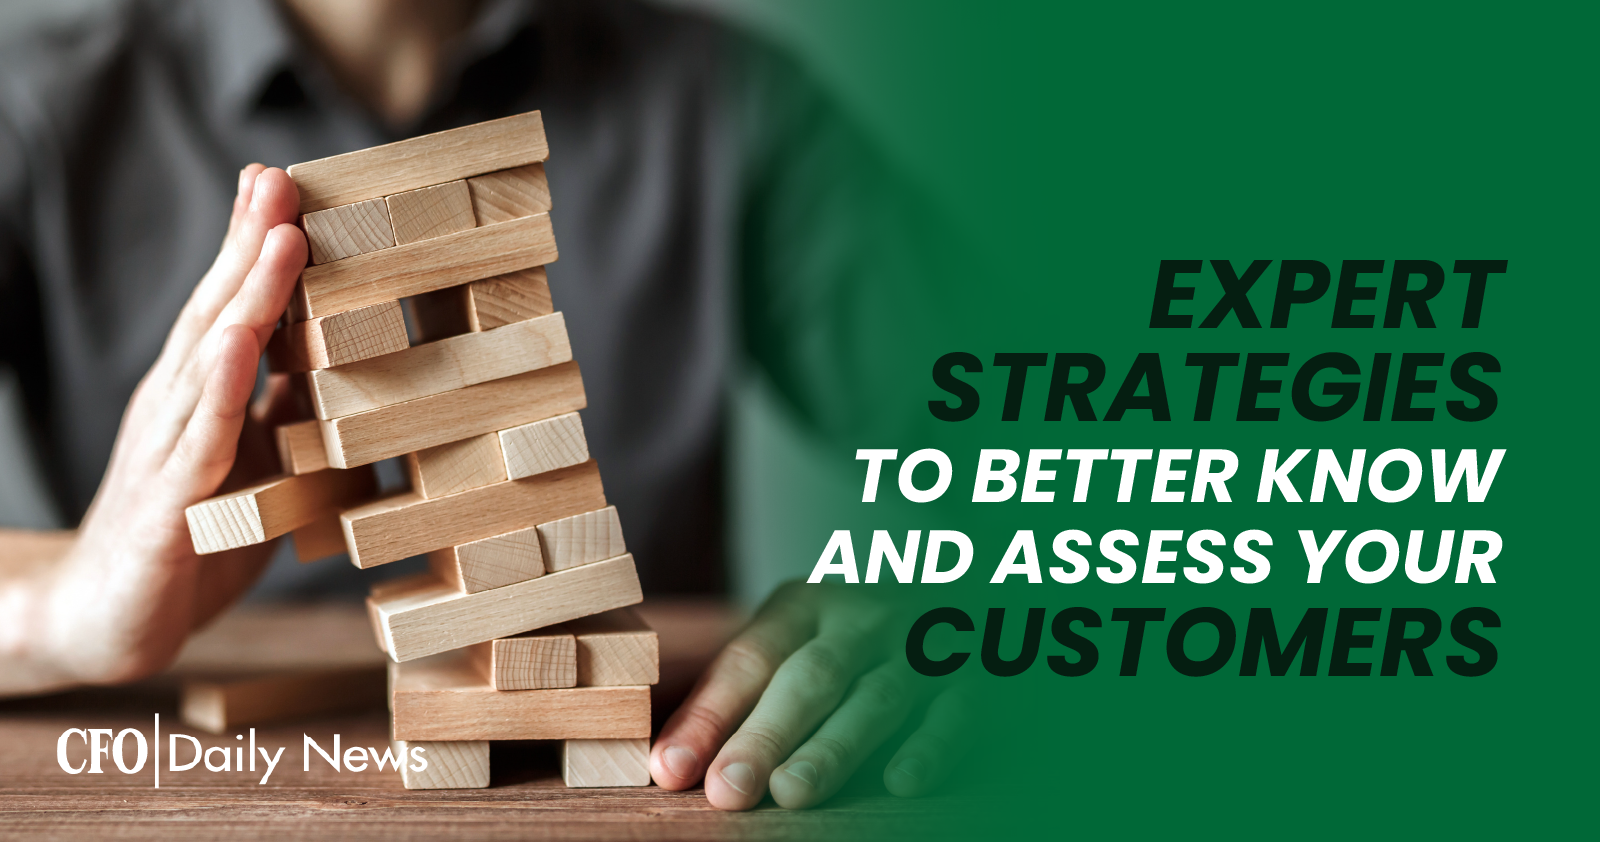 expert strategies to better know and assess your customers